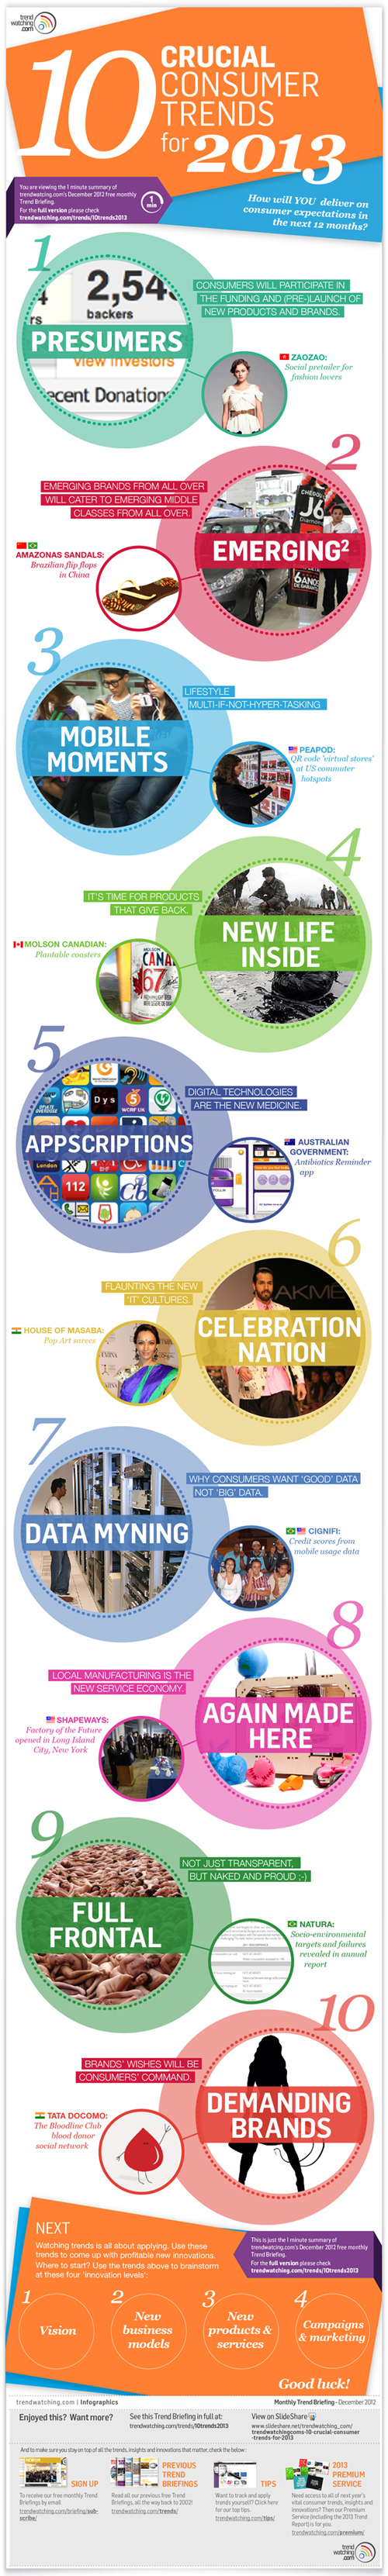 consumer trends 2013 infographic small business owners